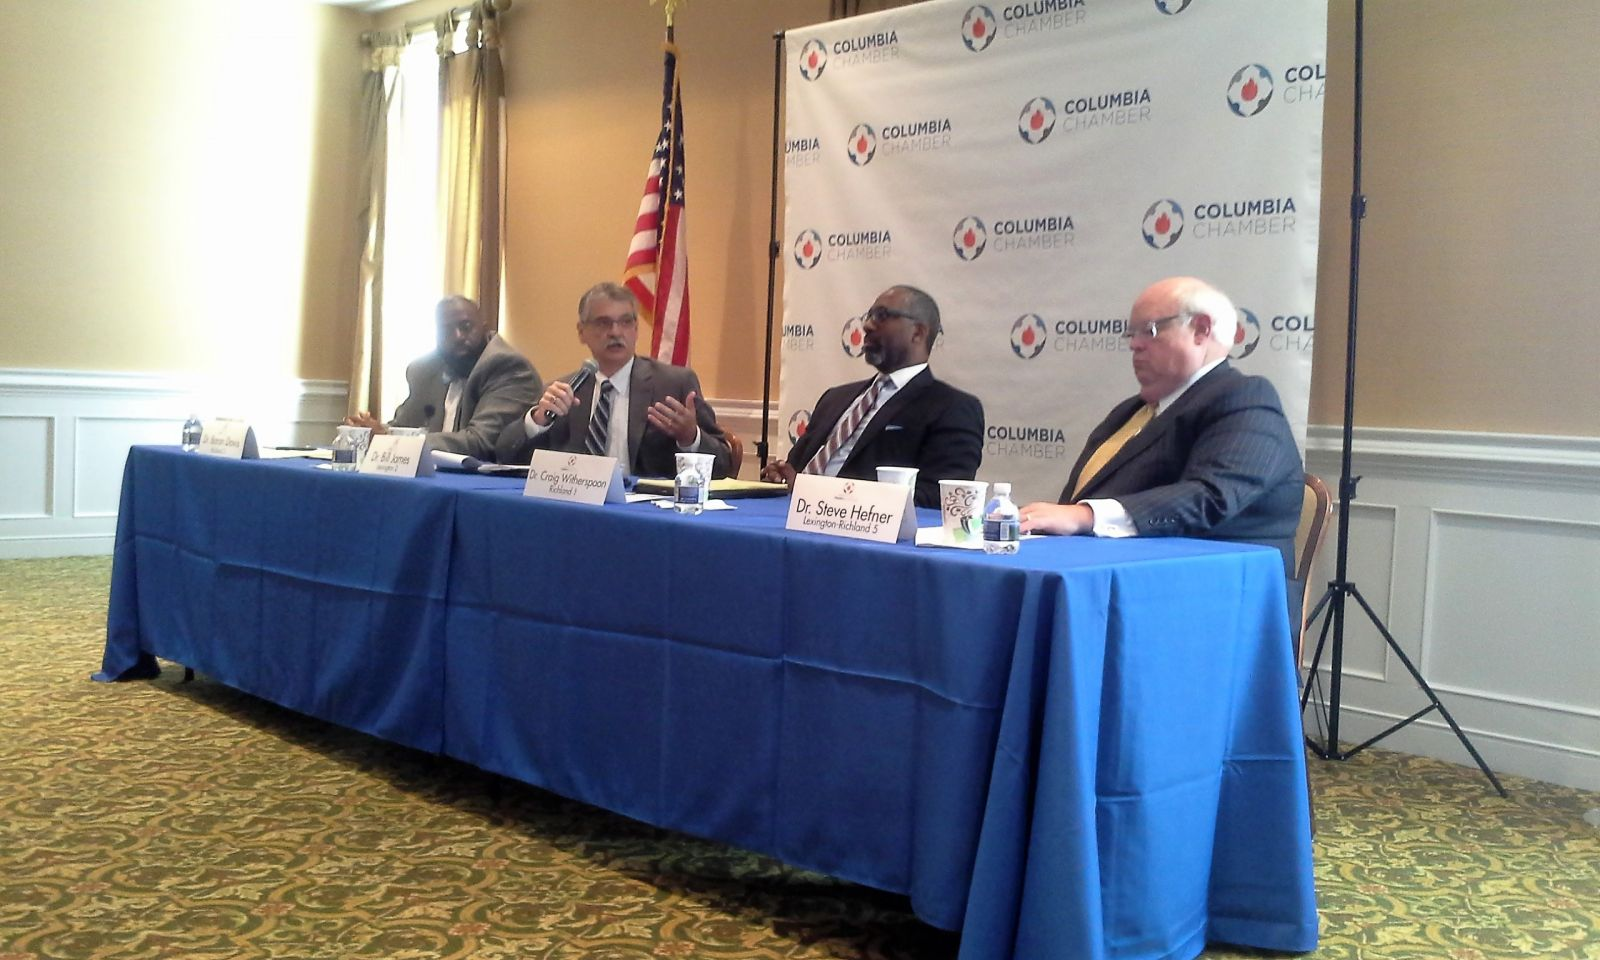 Education superintendents from school districts in the Midlands talk about the challenges faced by schools during a Columbia Chamber of Commerce panel discussion. (Photo/Travis Boland)